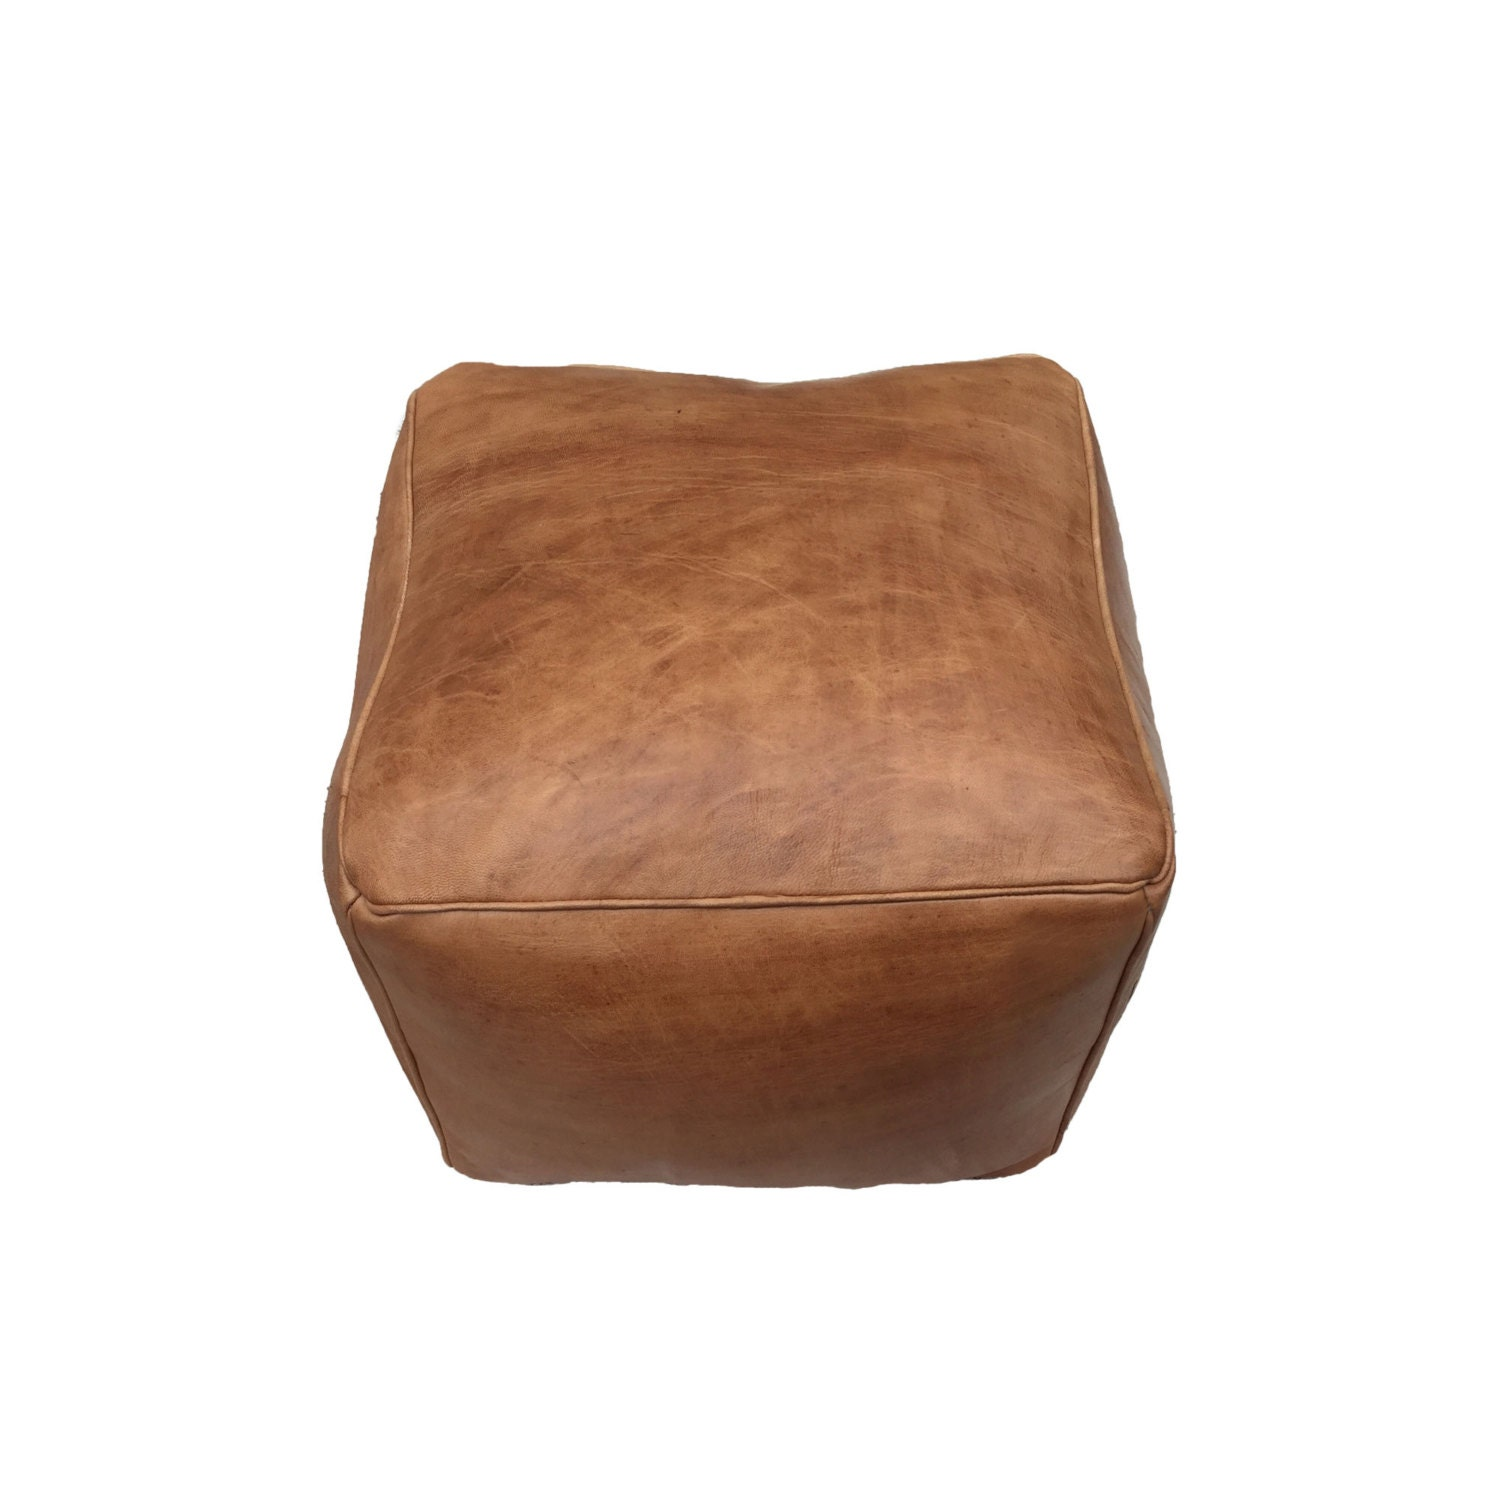 Leather Pouf Ottoman Natural Brown Leather Large Cube In